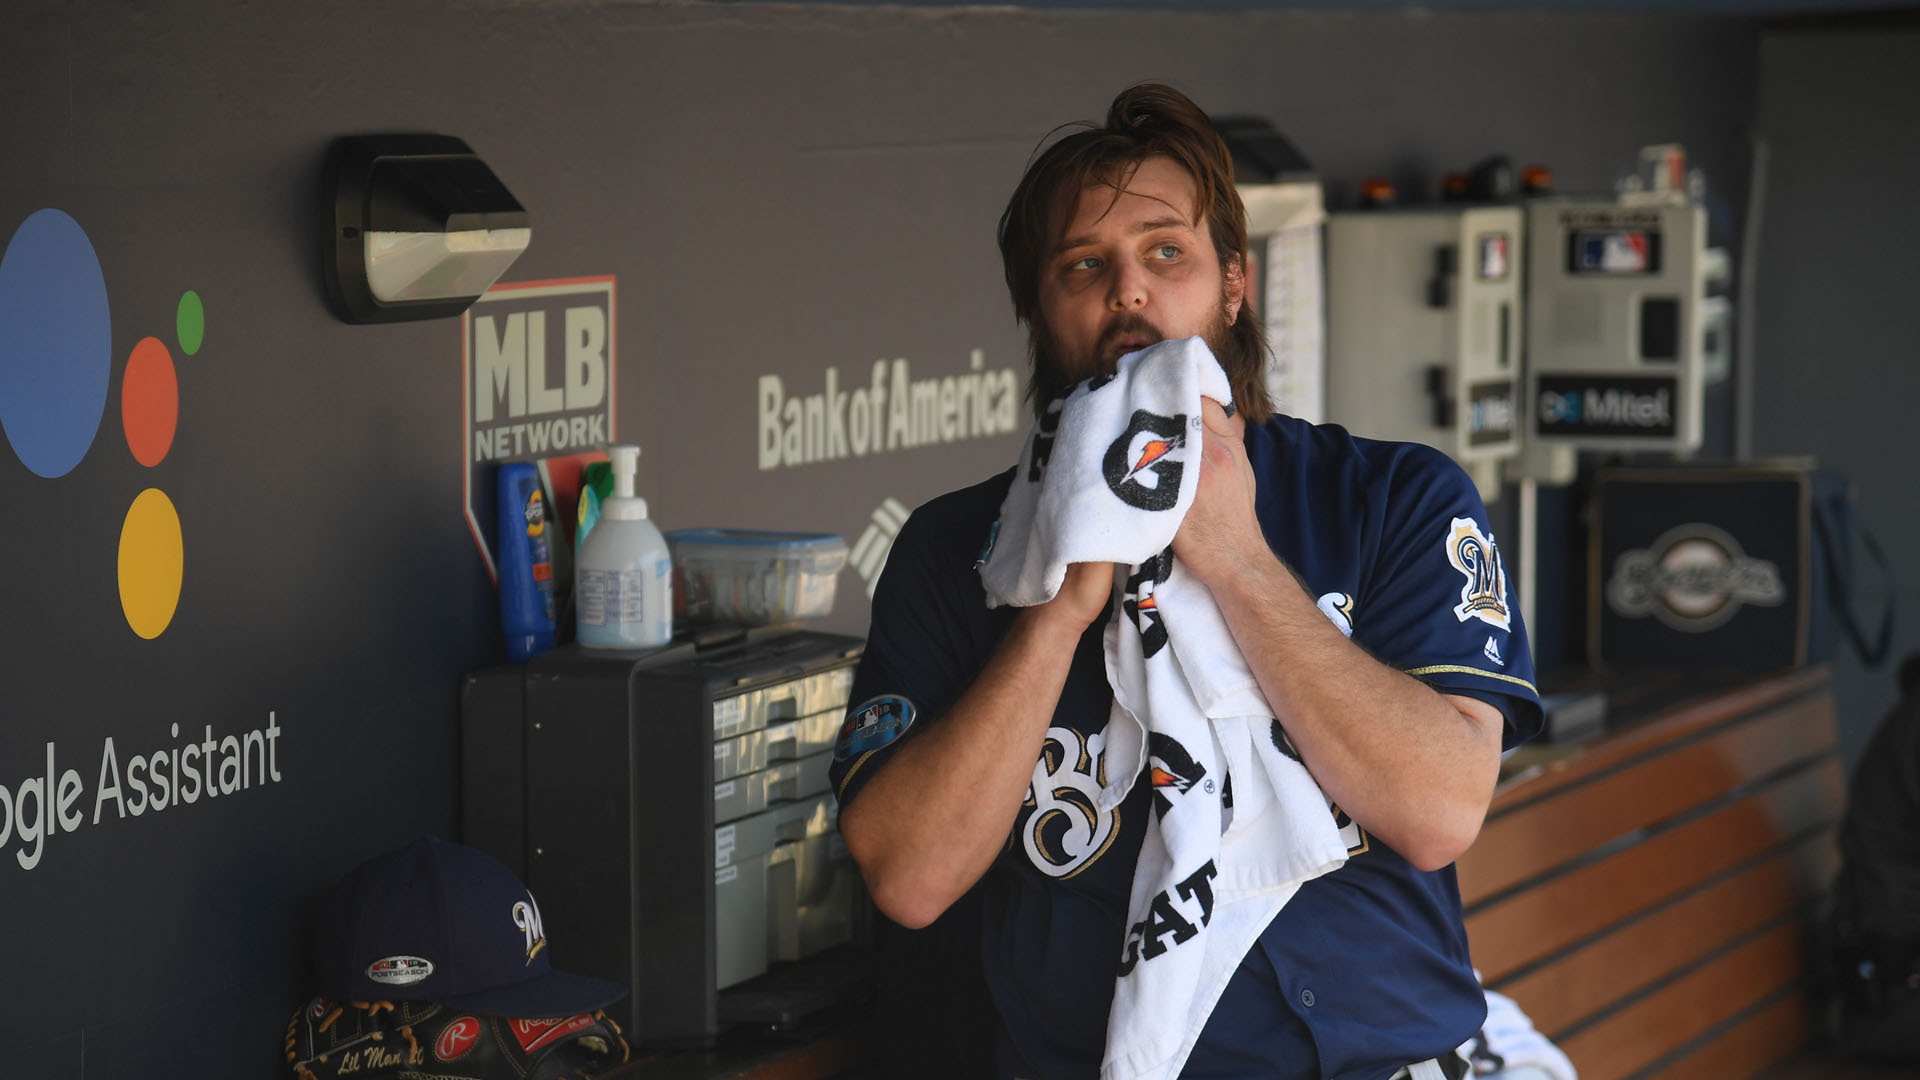 Brewers pull starter Miley after one batter